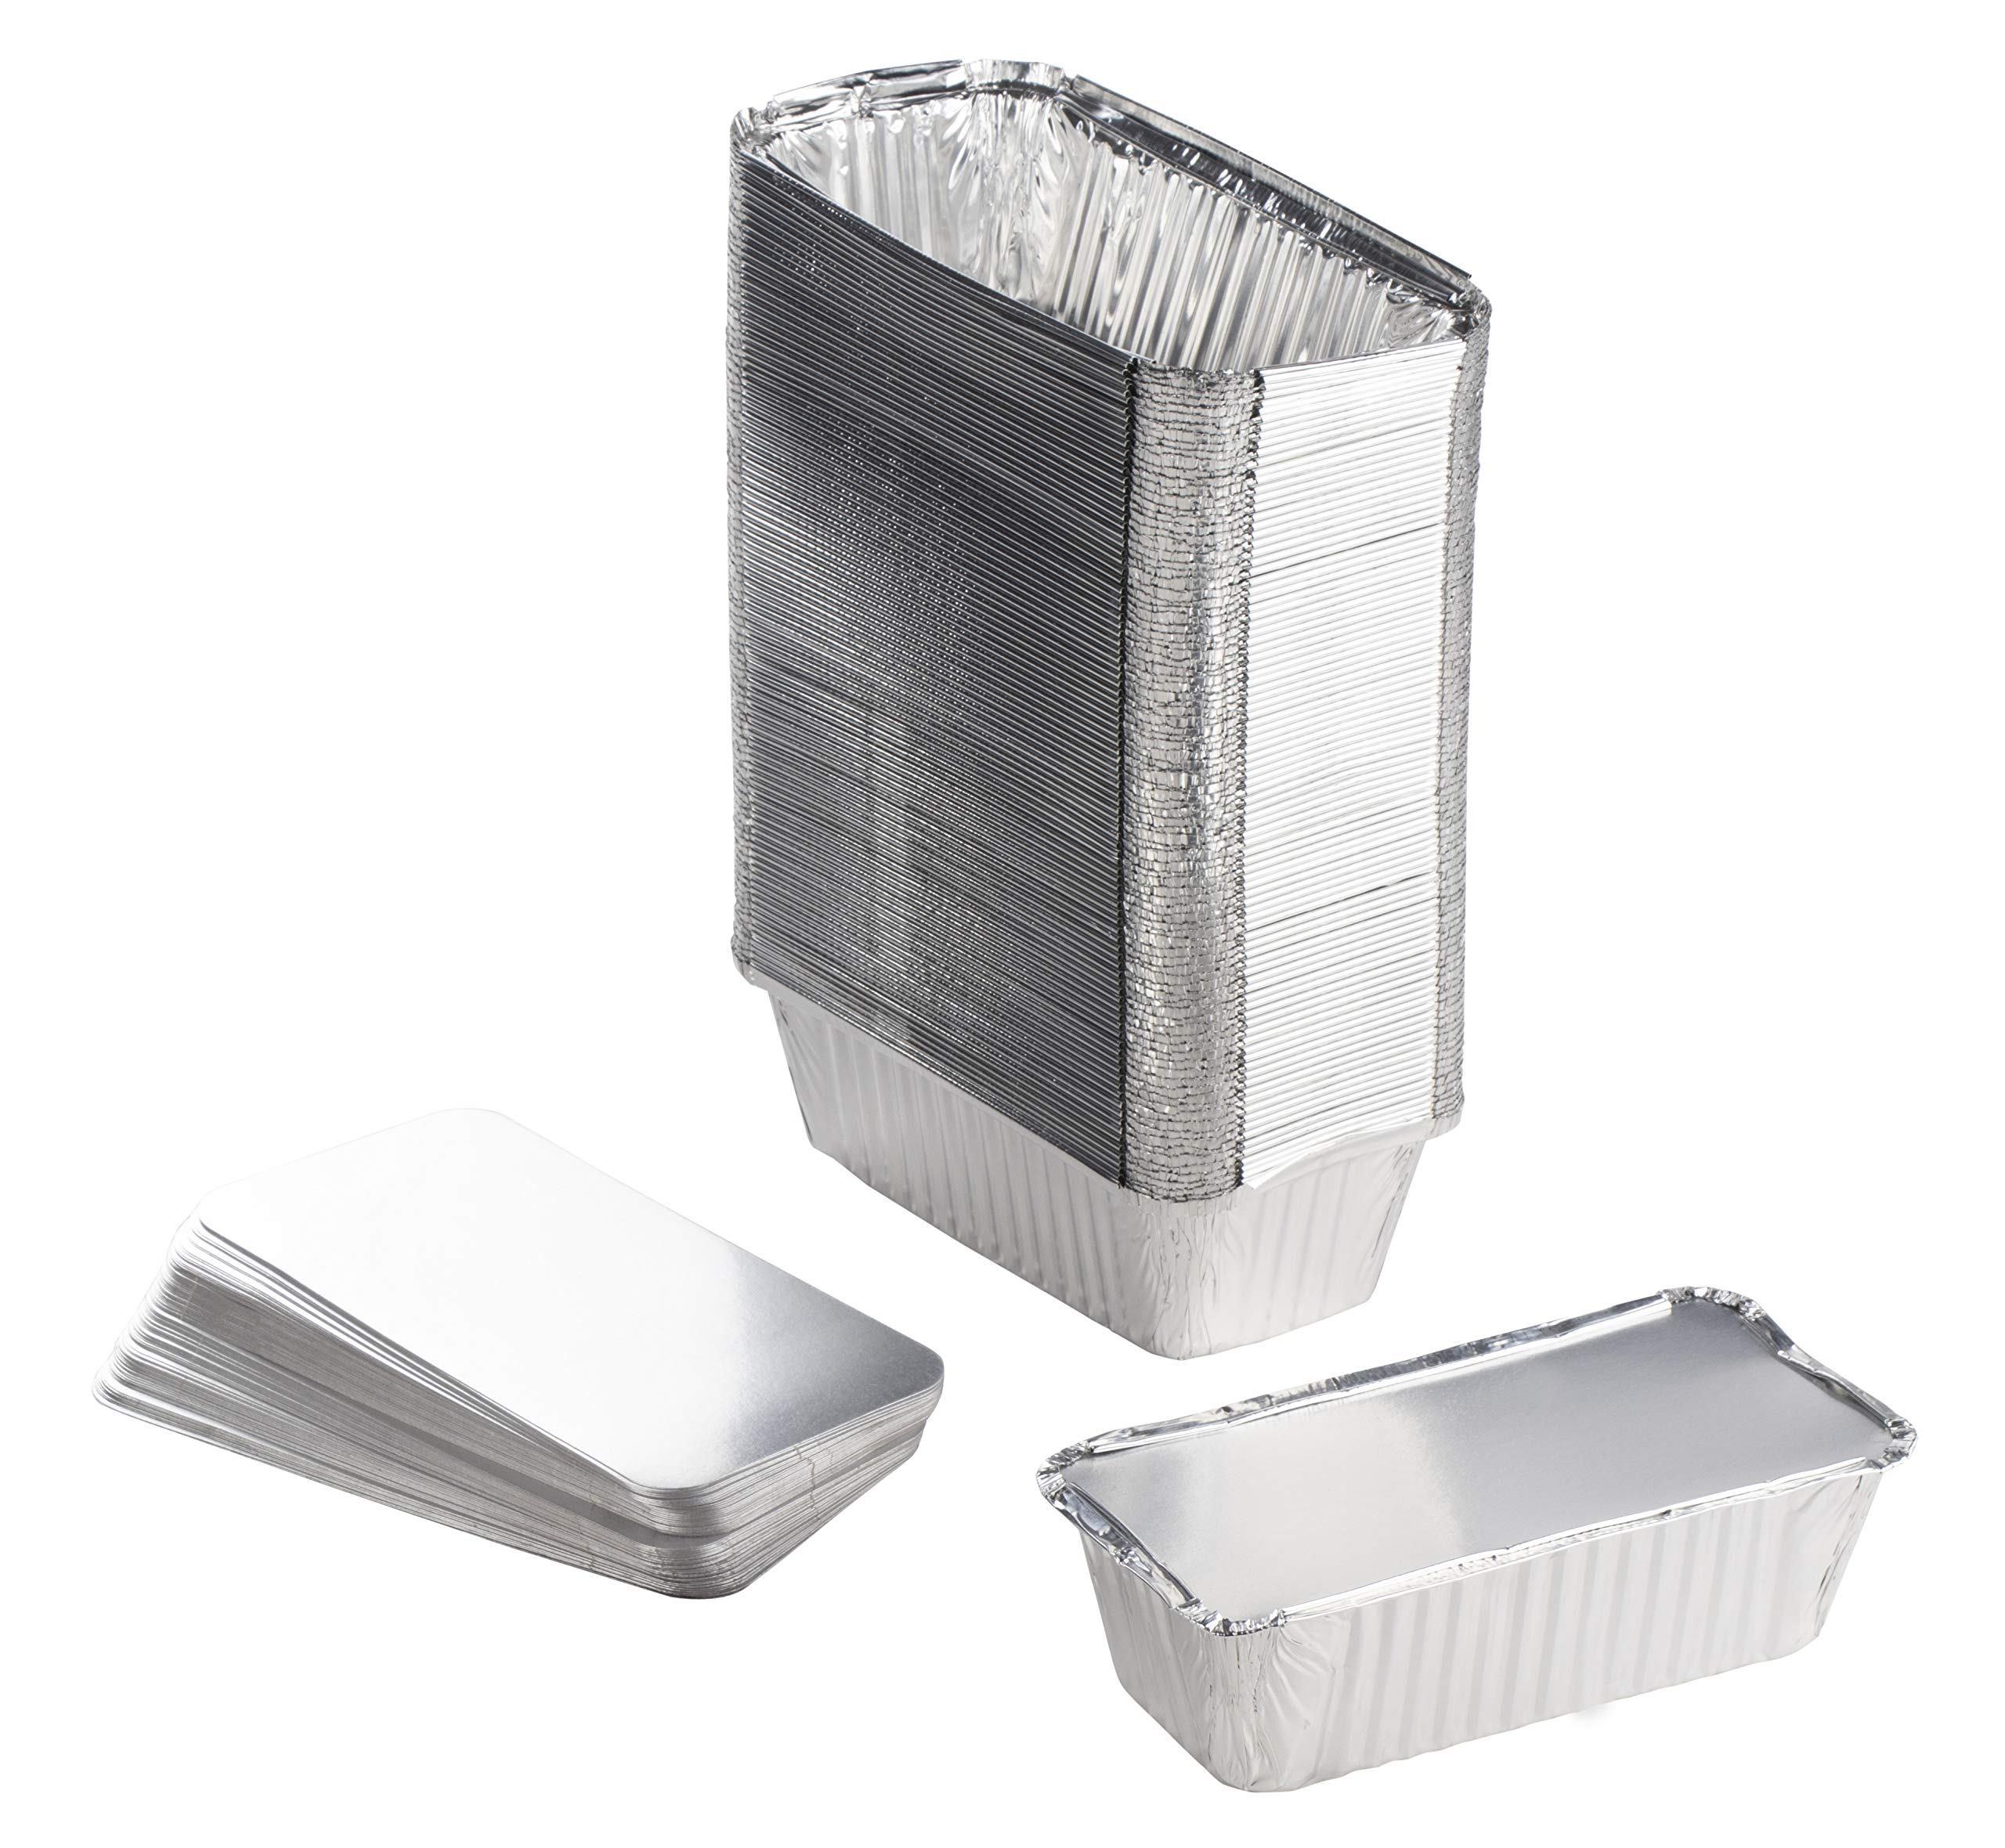 Aluminum Foil Pans - 100-Piece Loaf Pans With Lids, Deep Disposable Steam Table Pans for Baking, Serving, Roasting, Broiling, Cooking, 8.1 x 2.4 x 4.2 Inches, 20.4-Ounce Capacity by Juvale (Image #1)